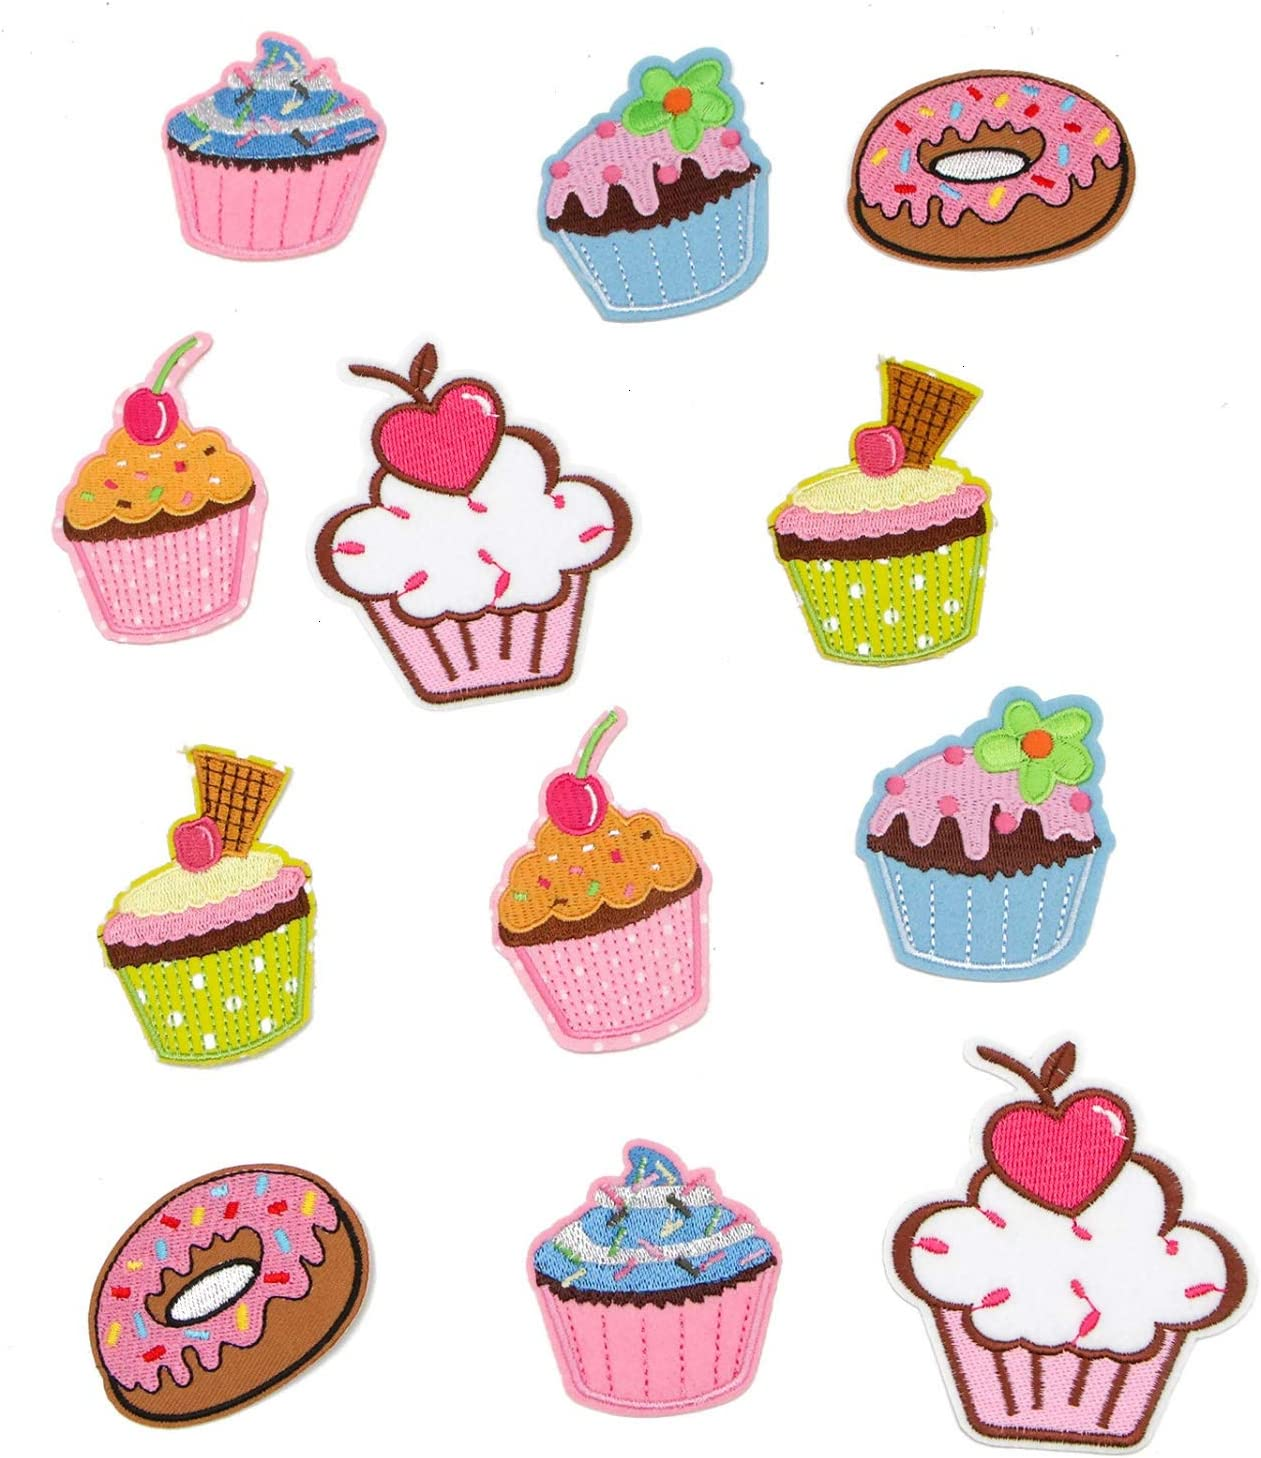 JETEHO 12Pack Ice Cream Fabric Patches Sticker Cartoon Embroidered Donut Patches for Iron On Sewing Kids Clothing